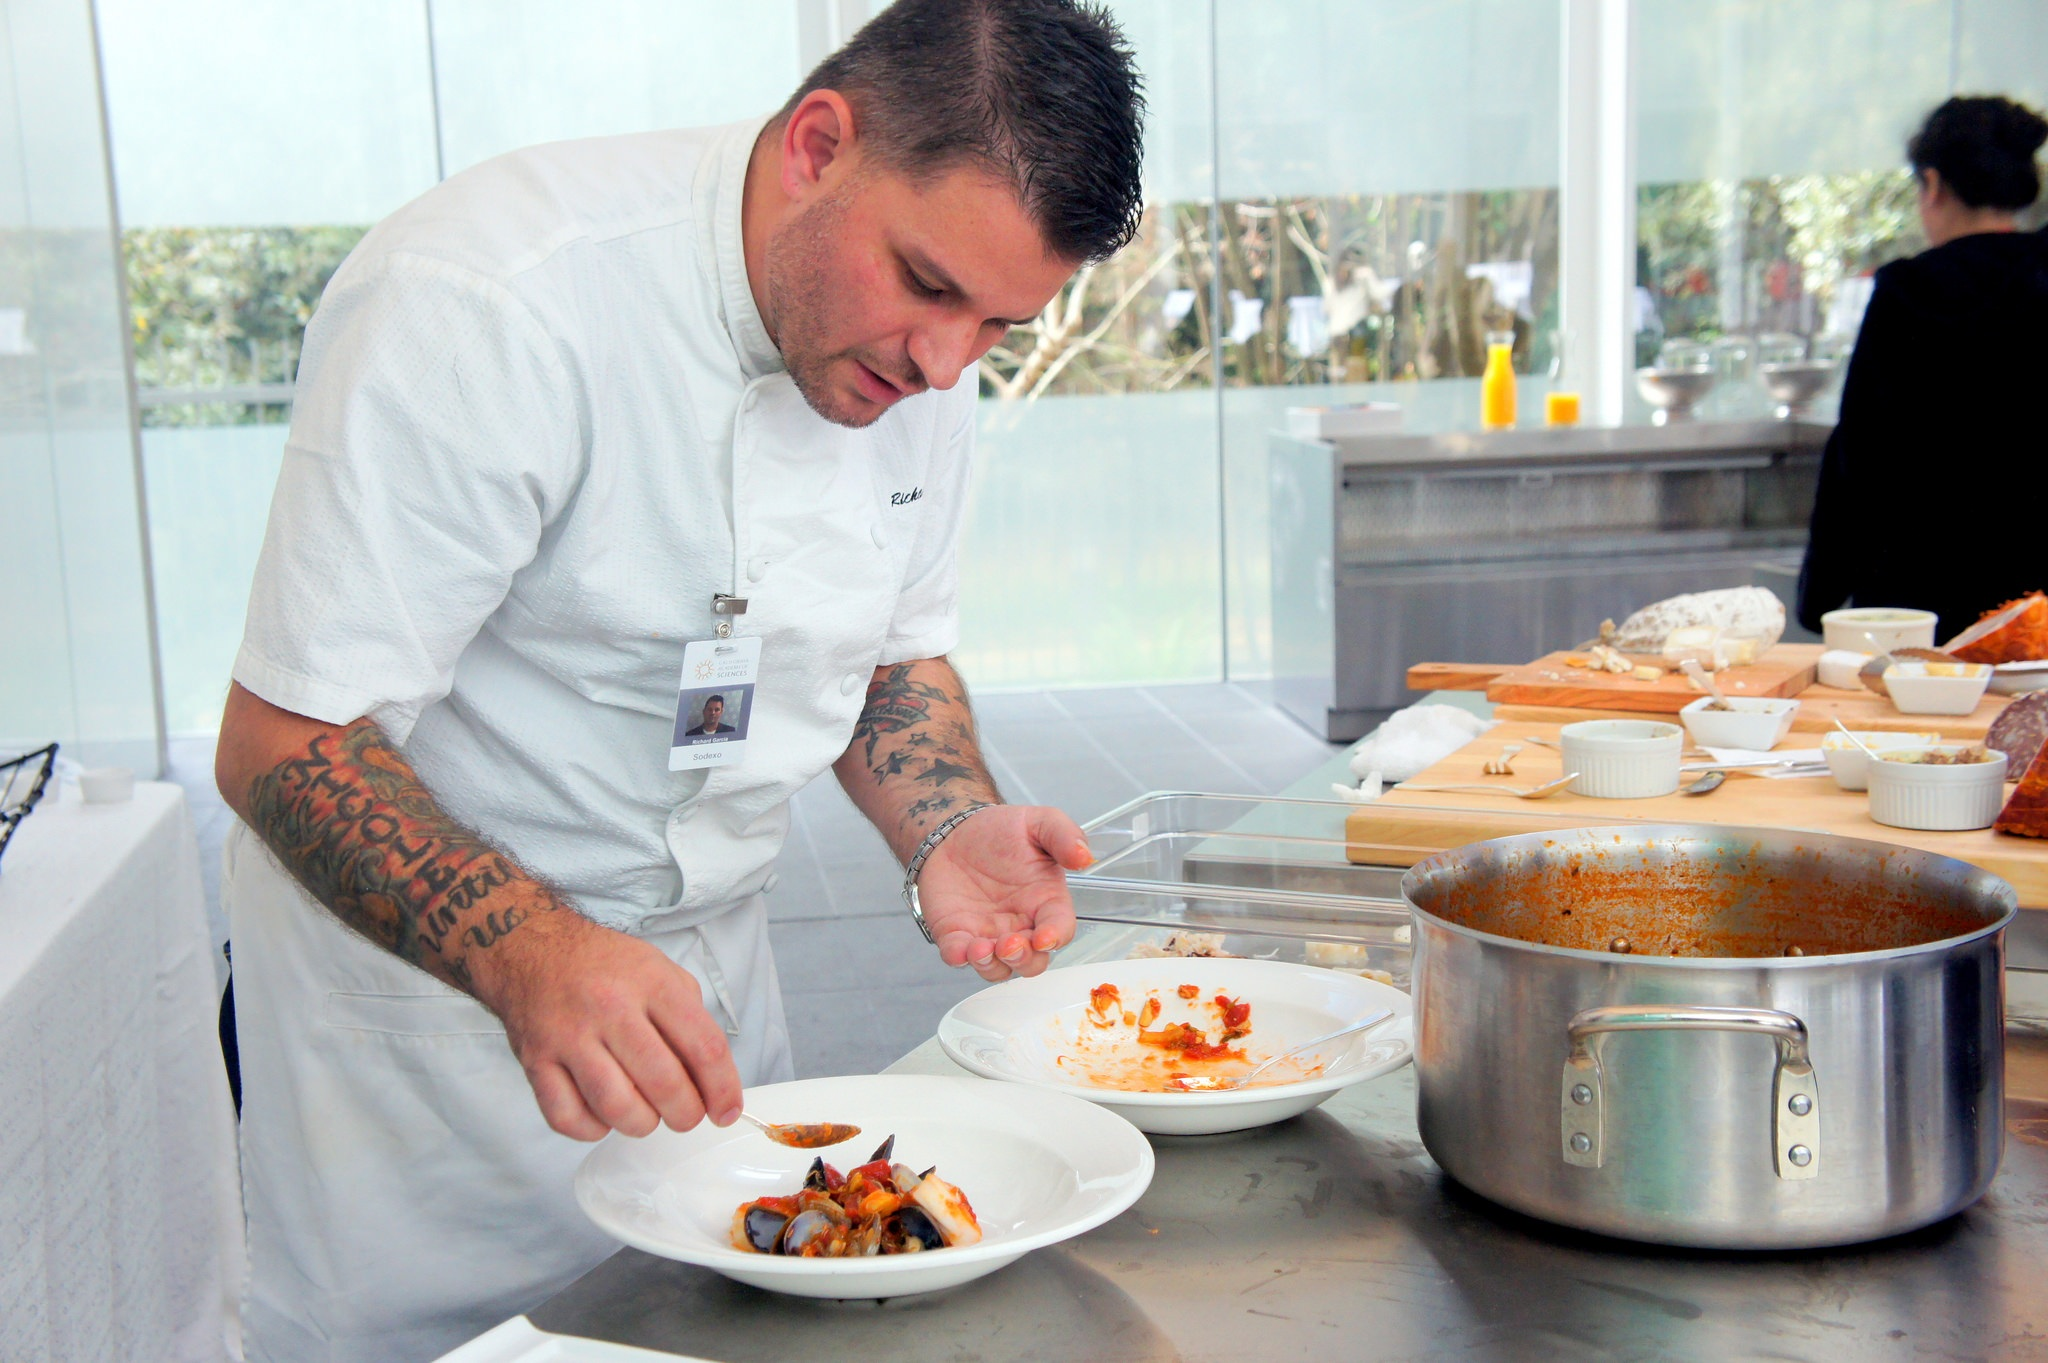 A sodexo chef at work